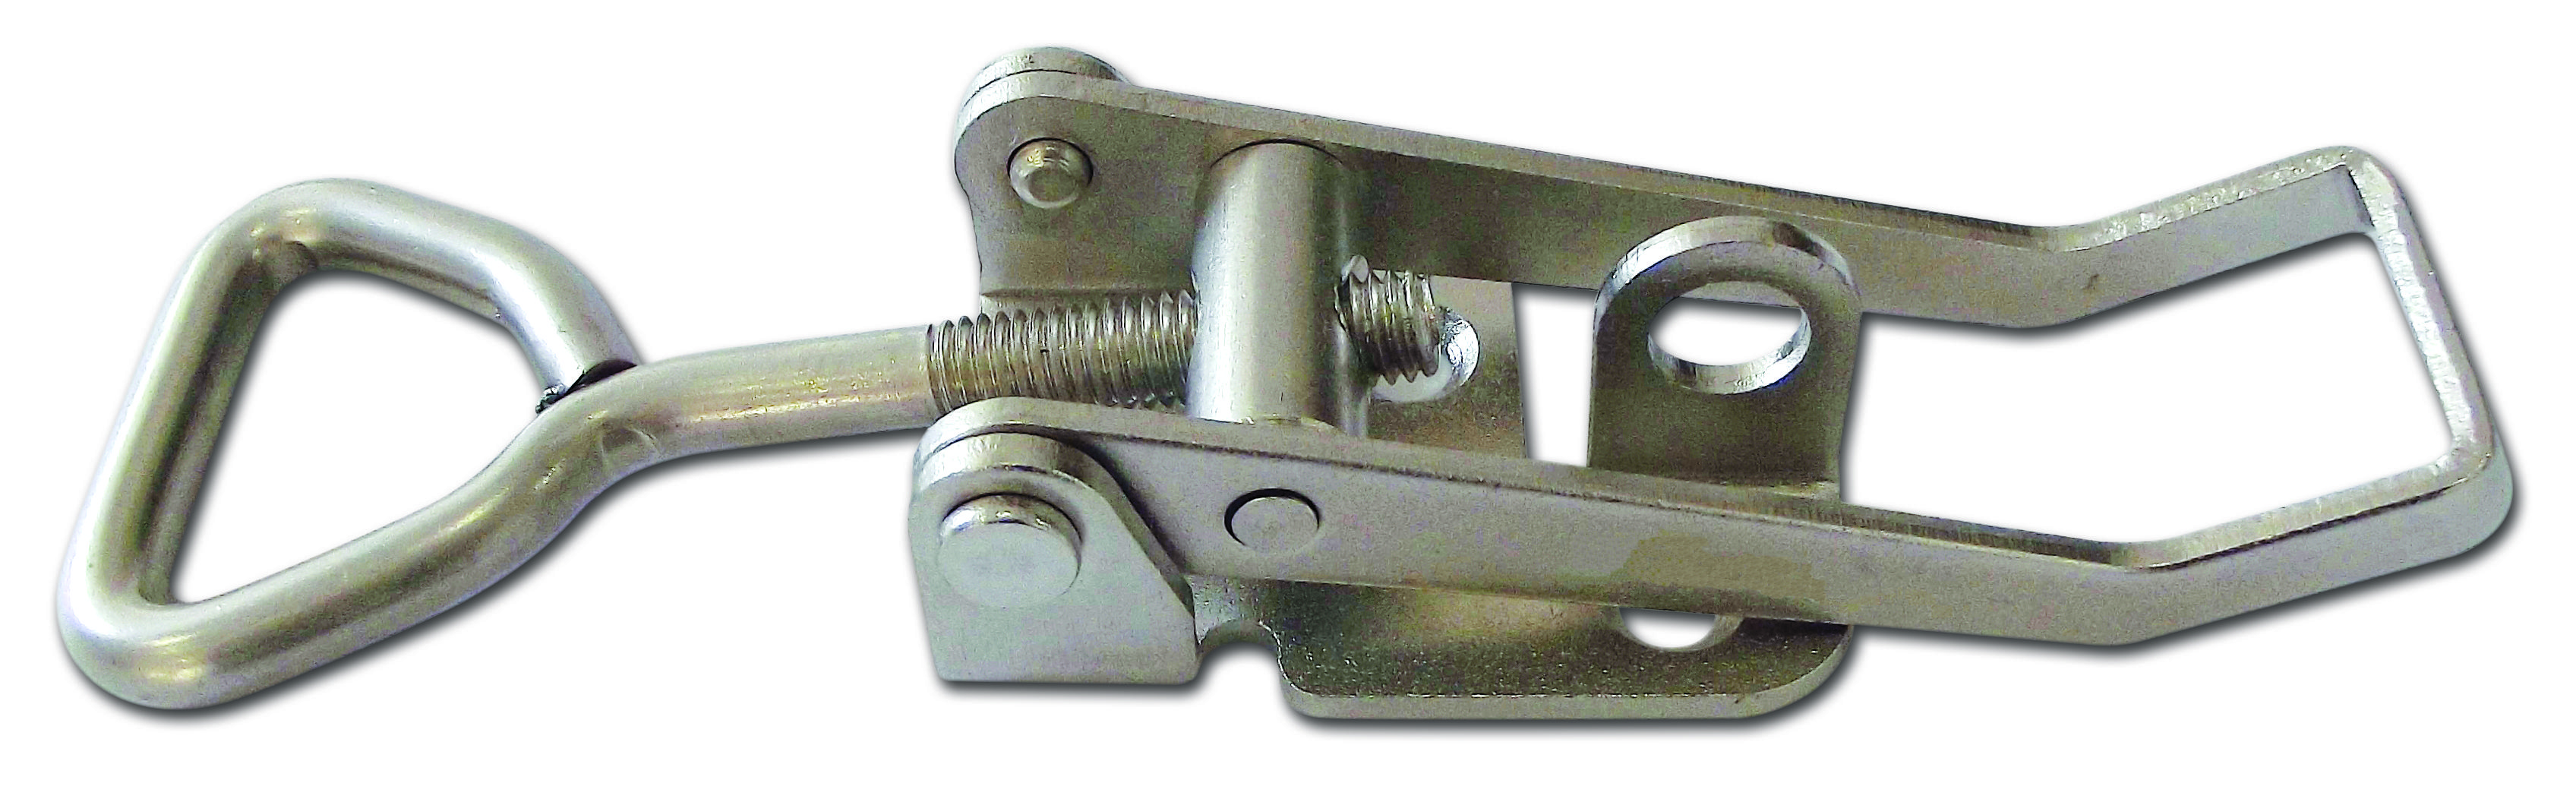 Adjustable draw toggle latch made of stainless steel 304 electro